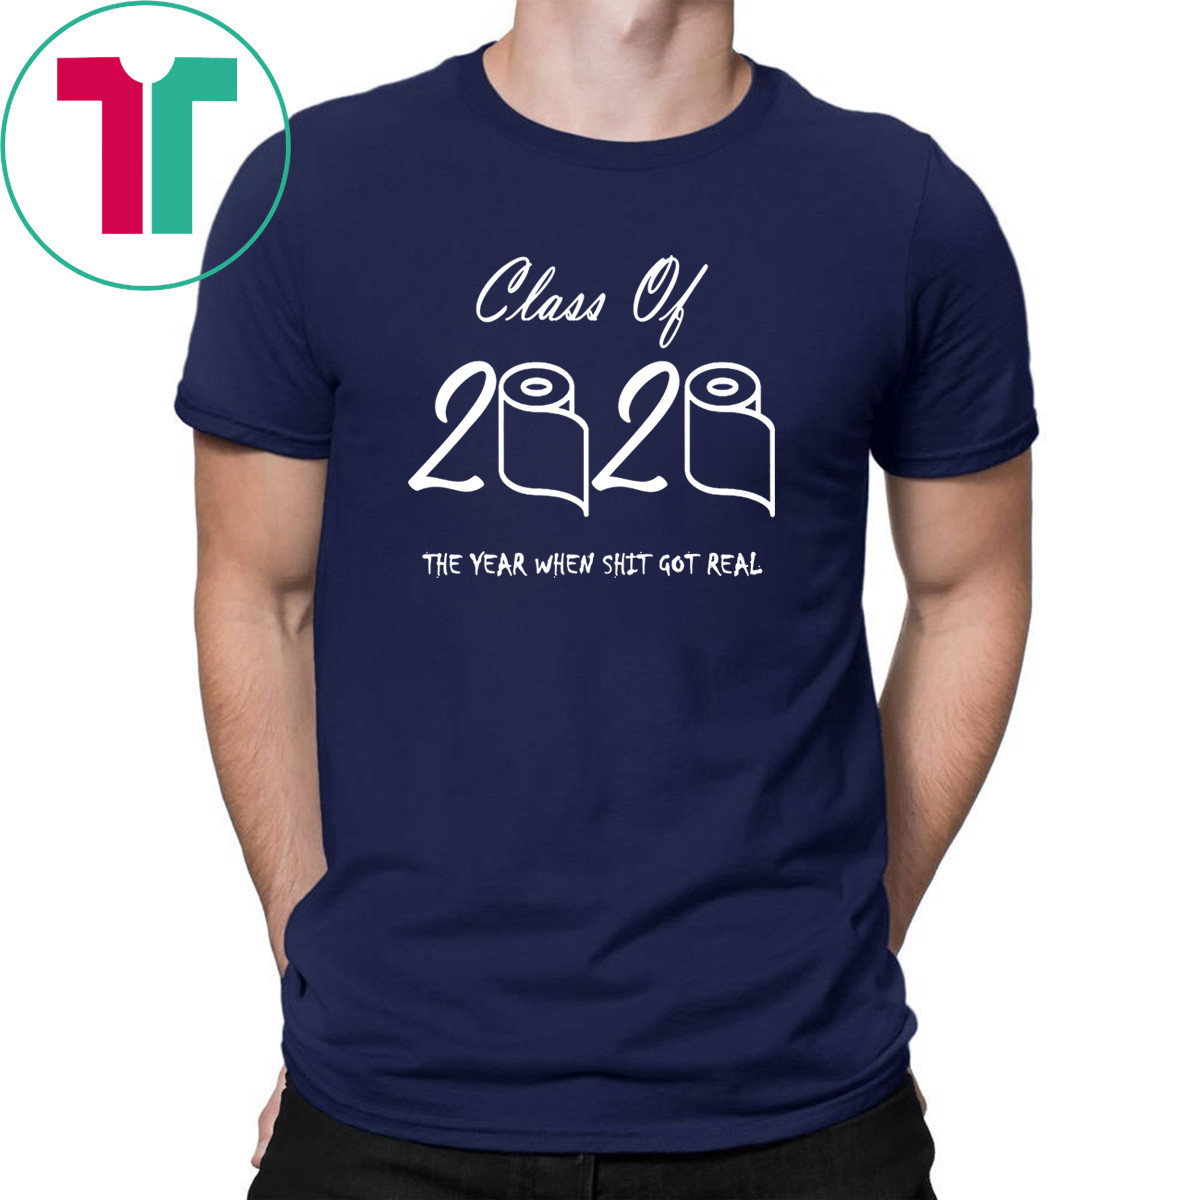 Class Of 2020 Class Of 2020 The Year When Shit Got Real Shirt